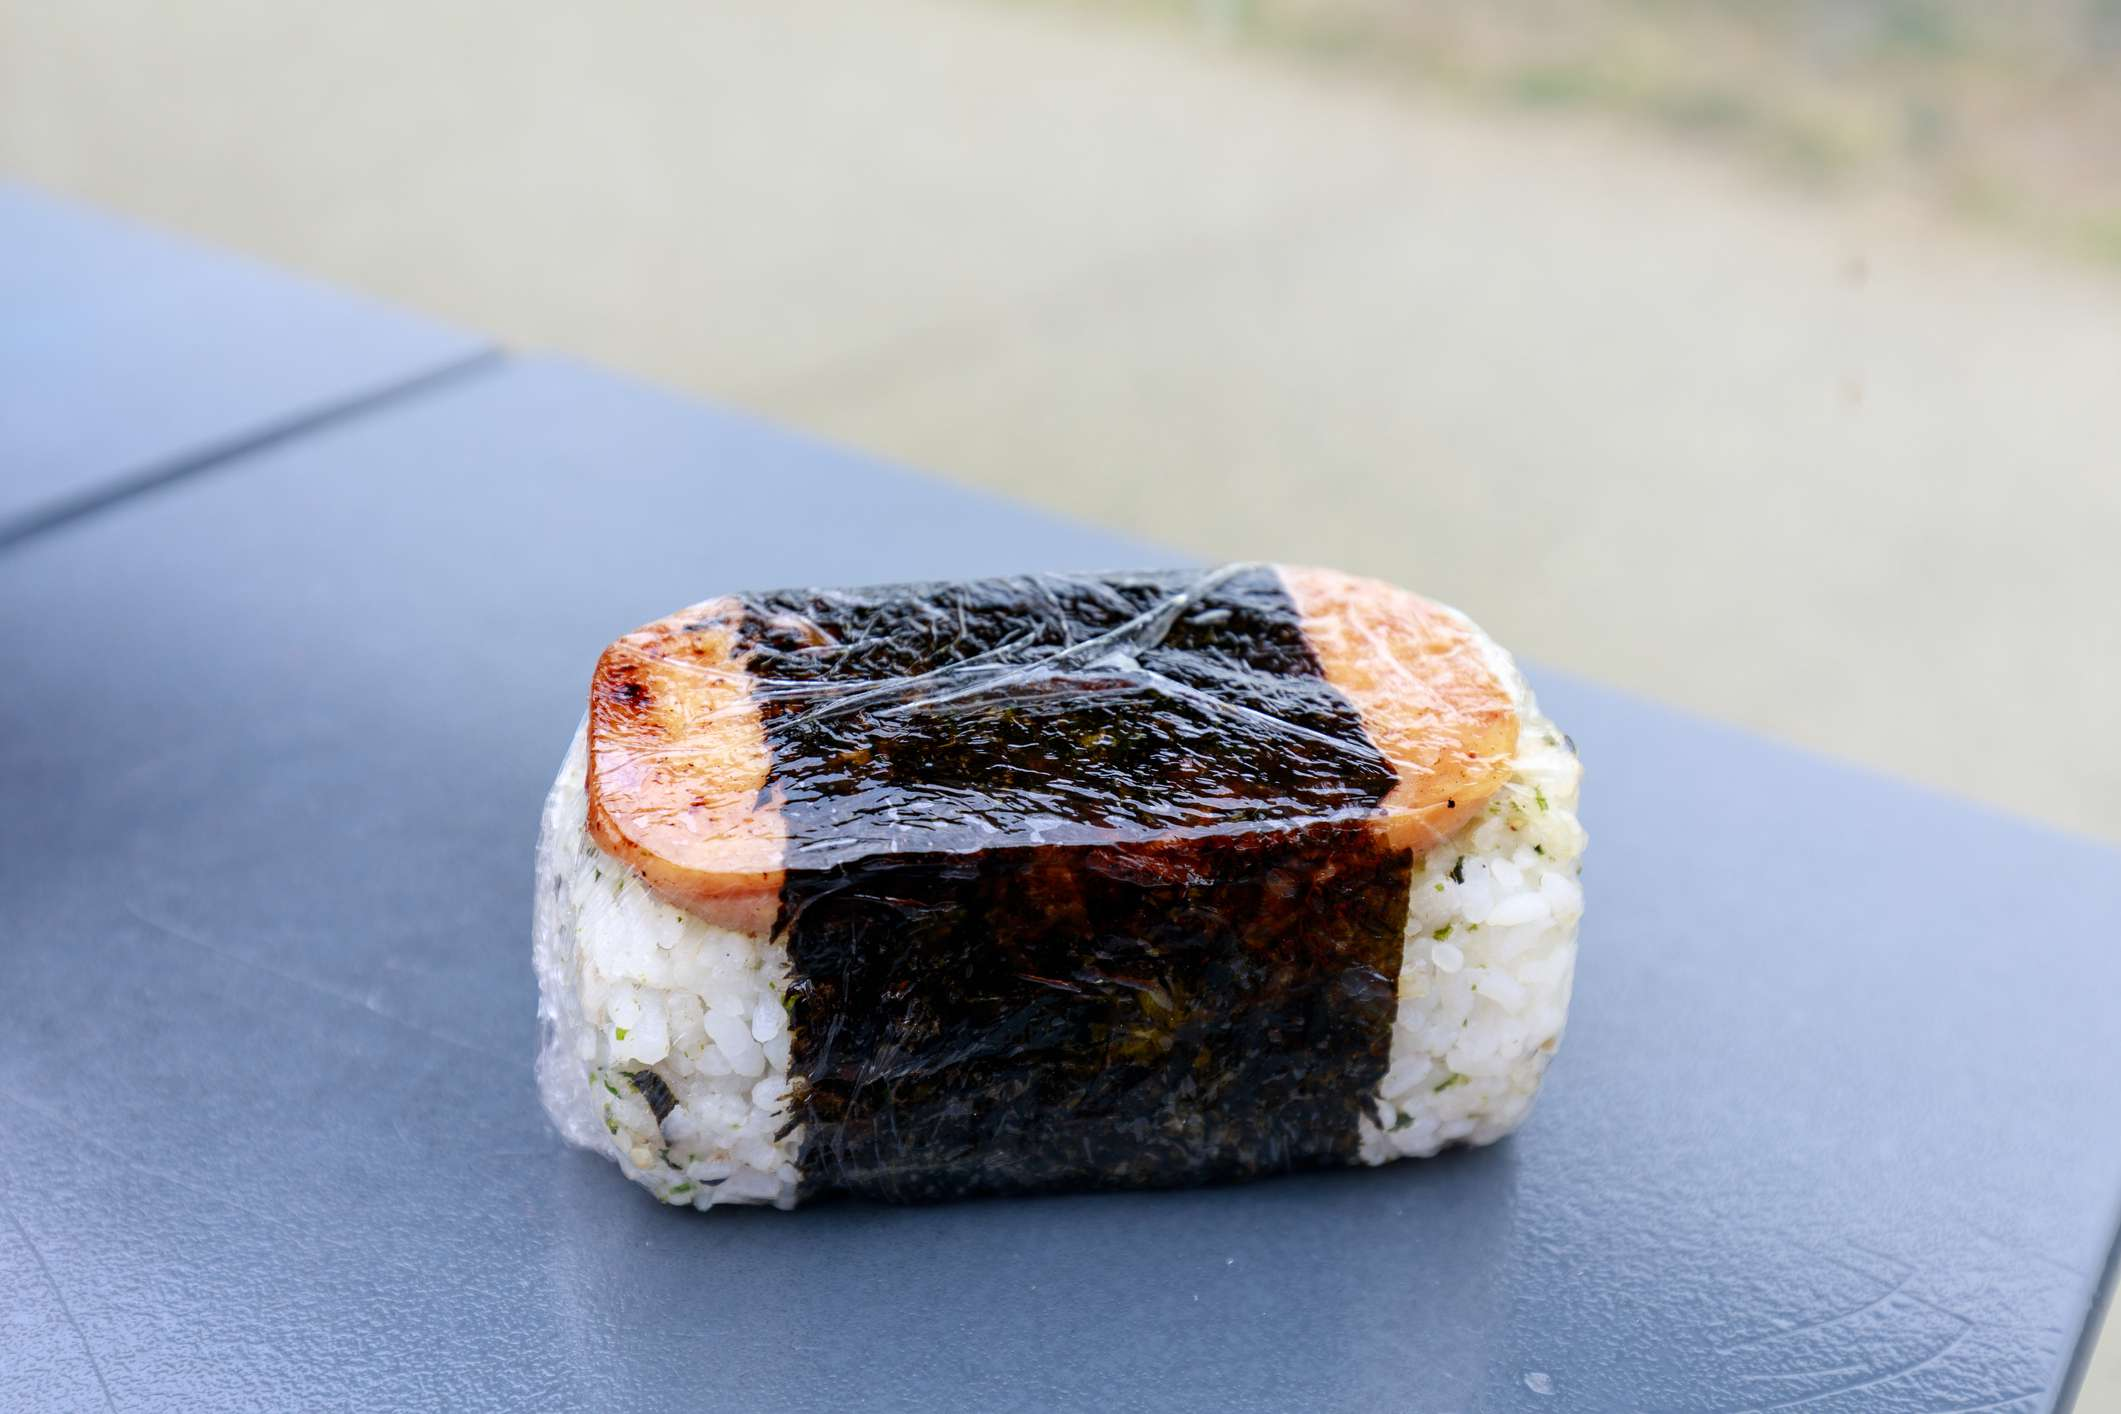 Spam musubi wrapped in plastic